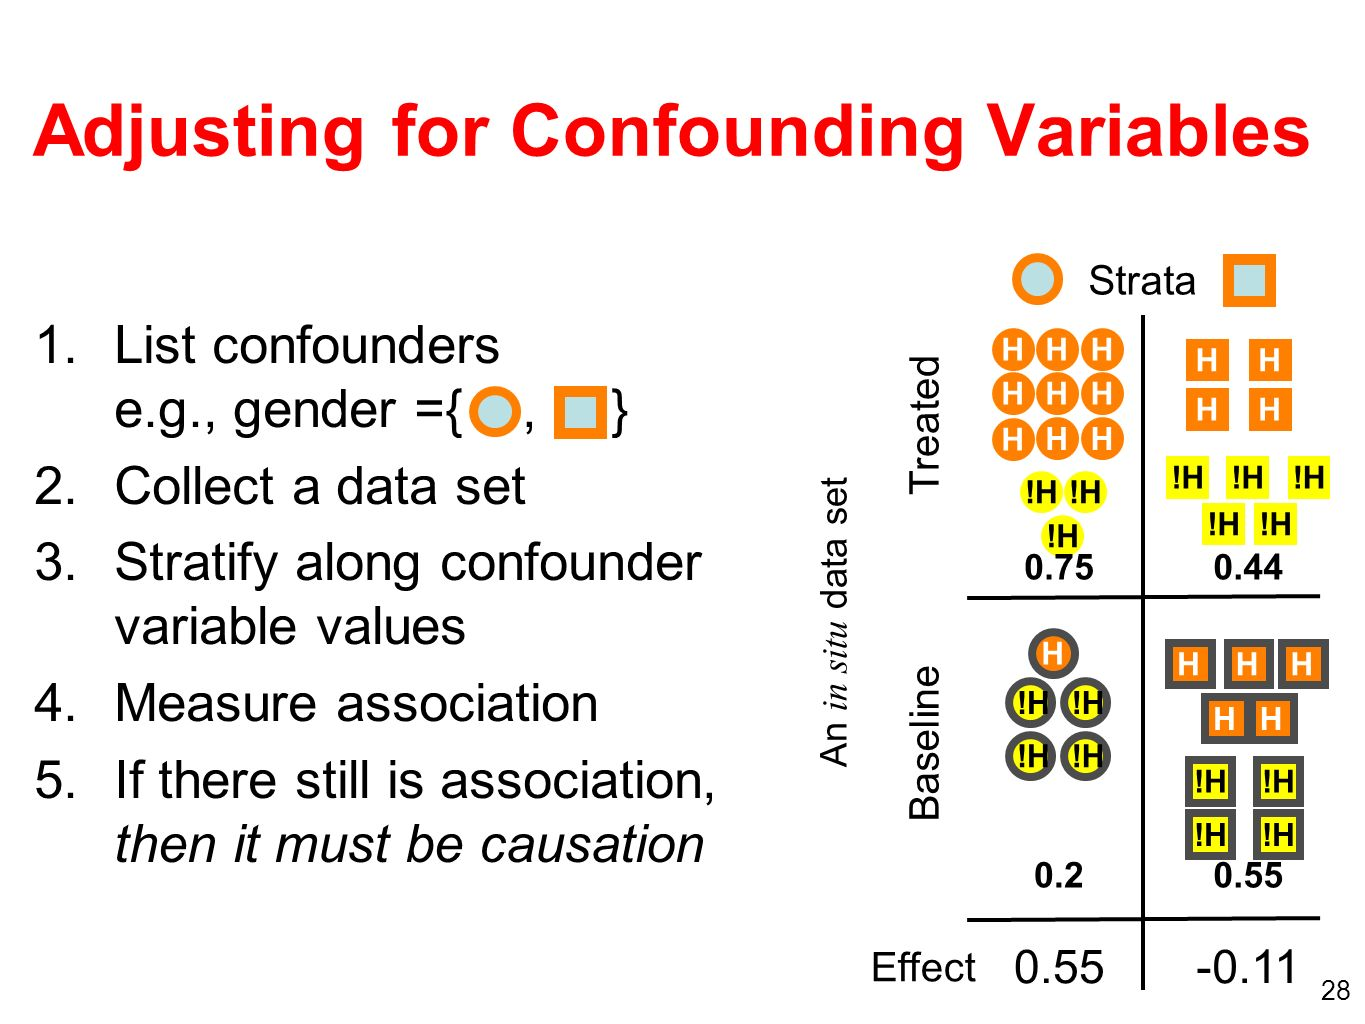 28 Adjusting for Confounding Variables !H H H HHH H H HH H H H H H H HH H H Treated Baseline Strata Effect An in situ data set 1.